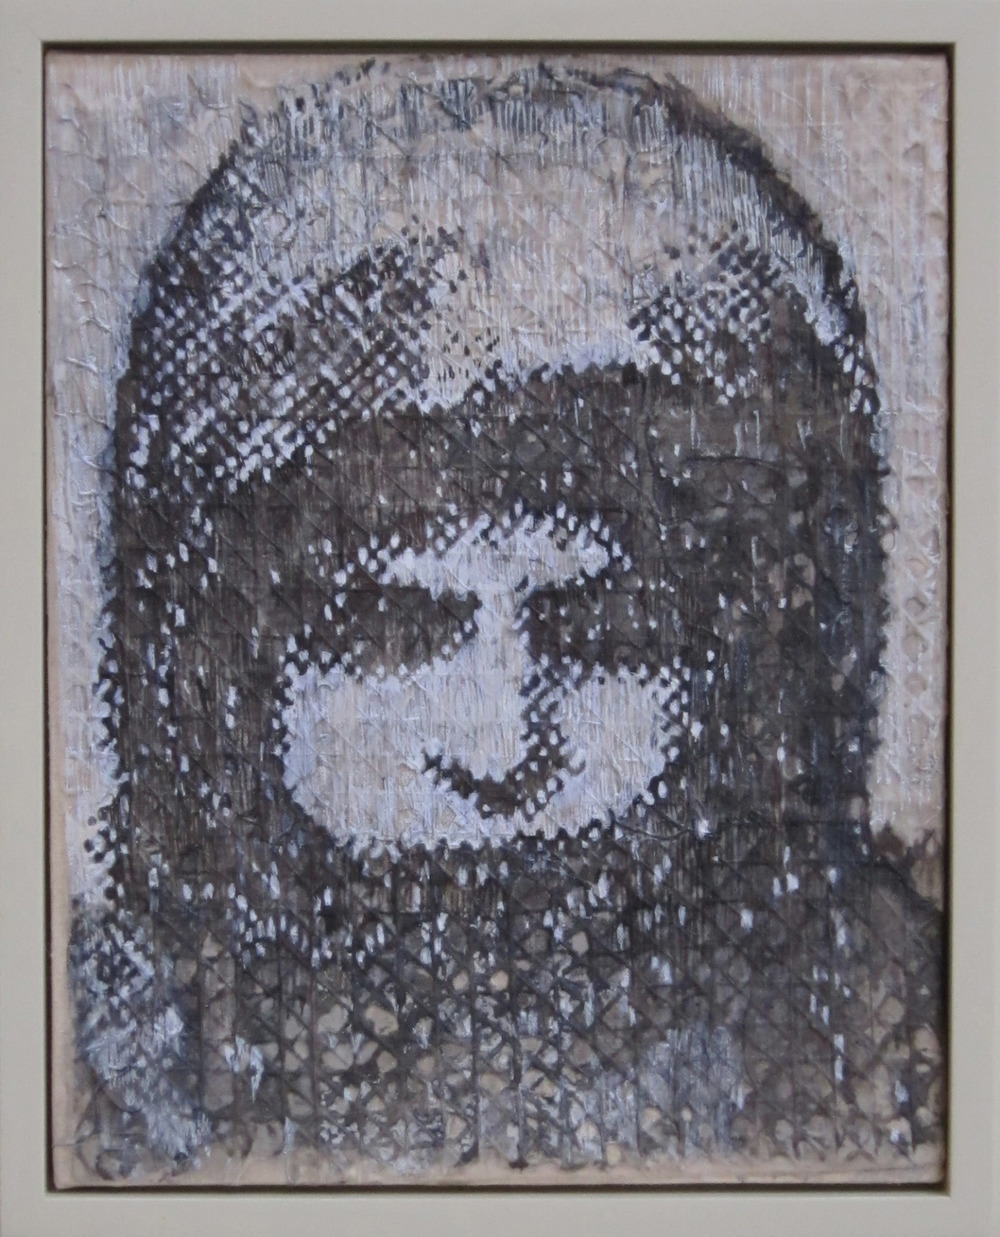 5bk(0) - Orphan Girl, inks on handmade paper over canvas, 14x11 in. 2010.jpg